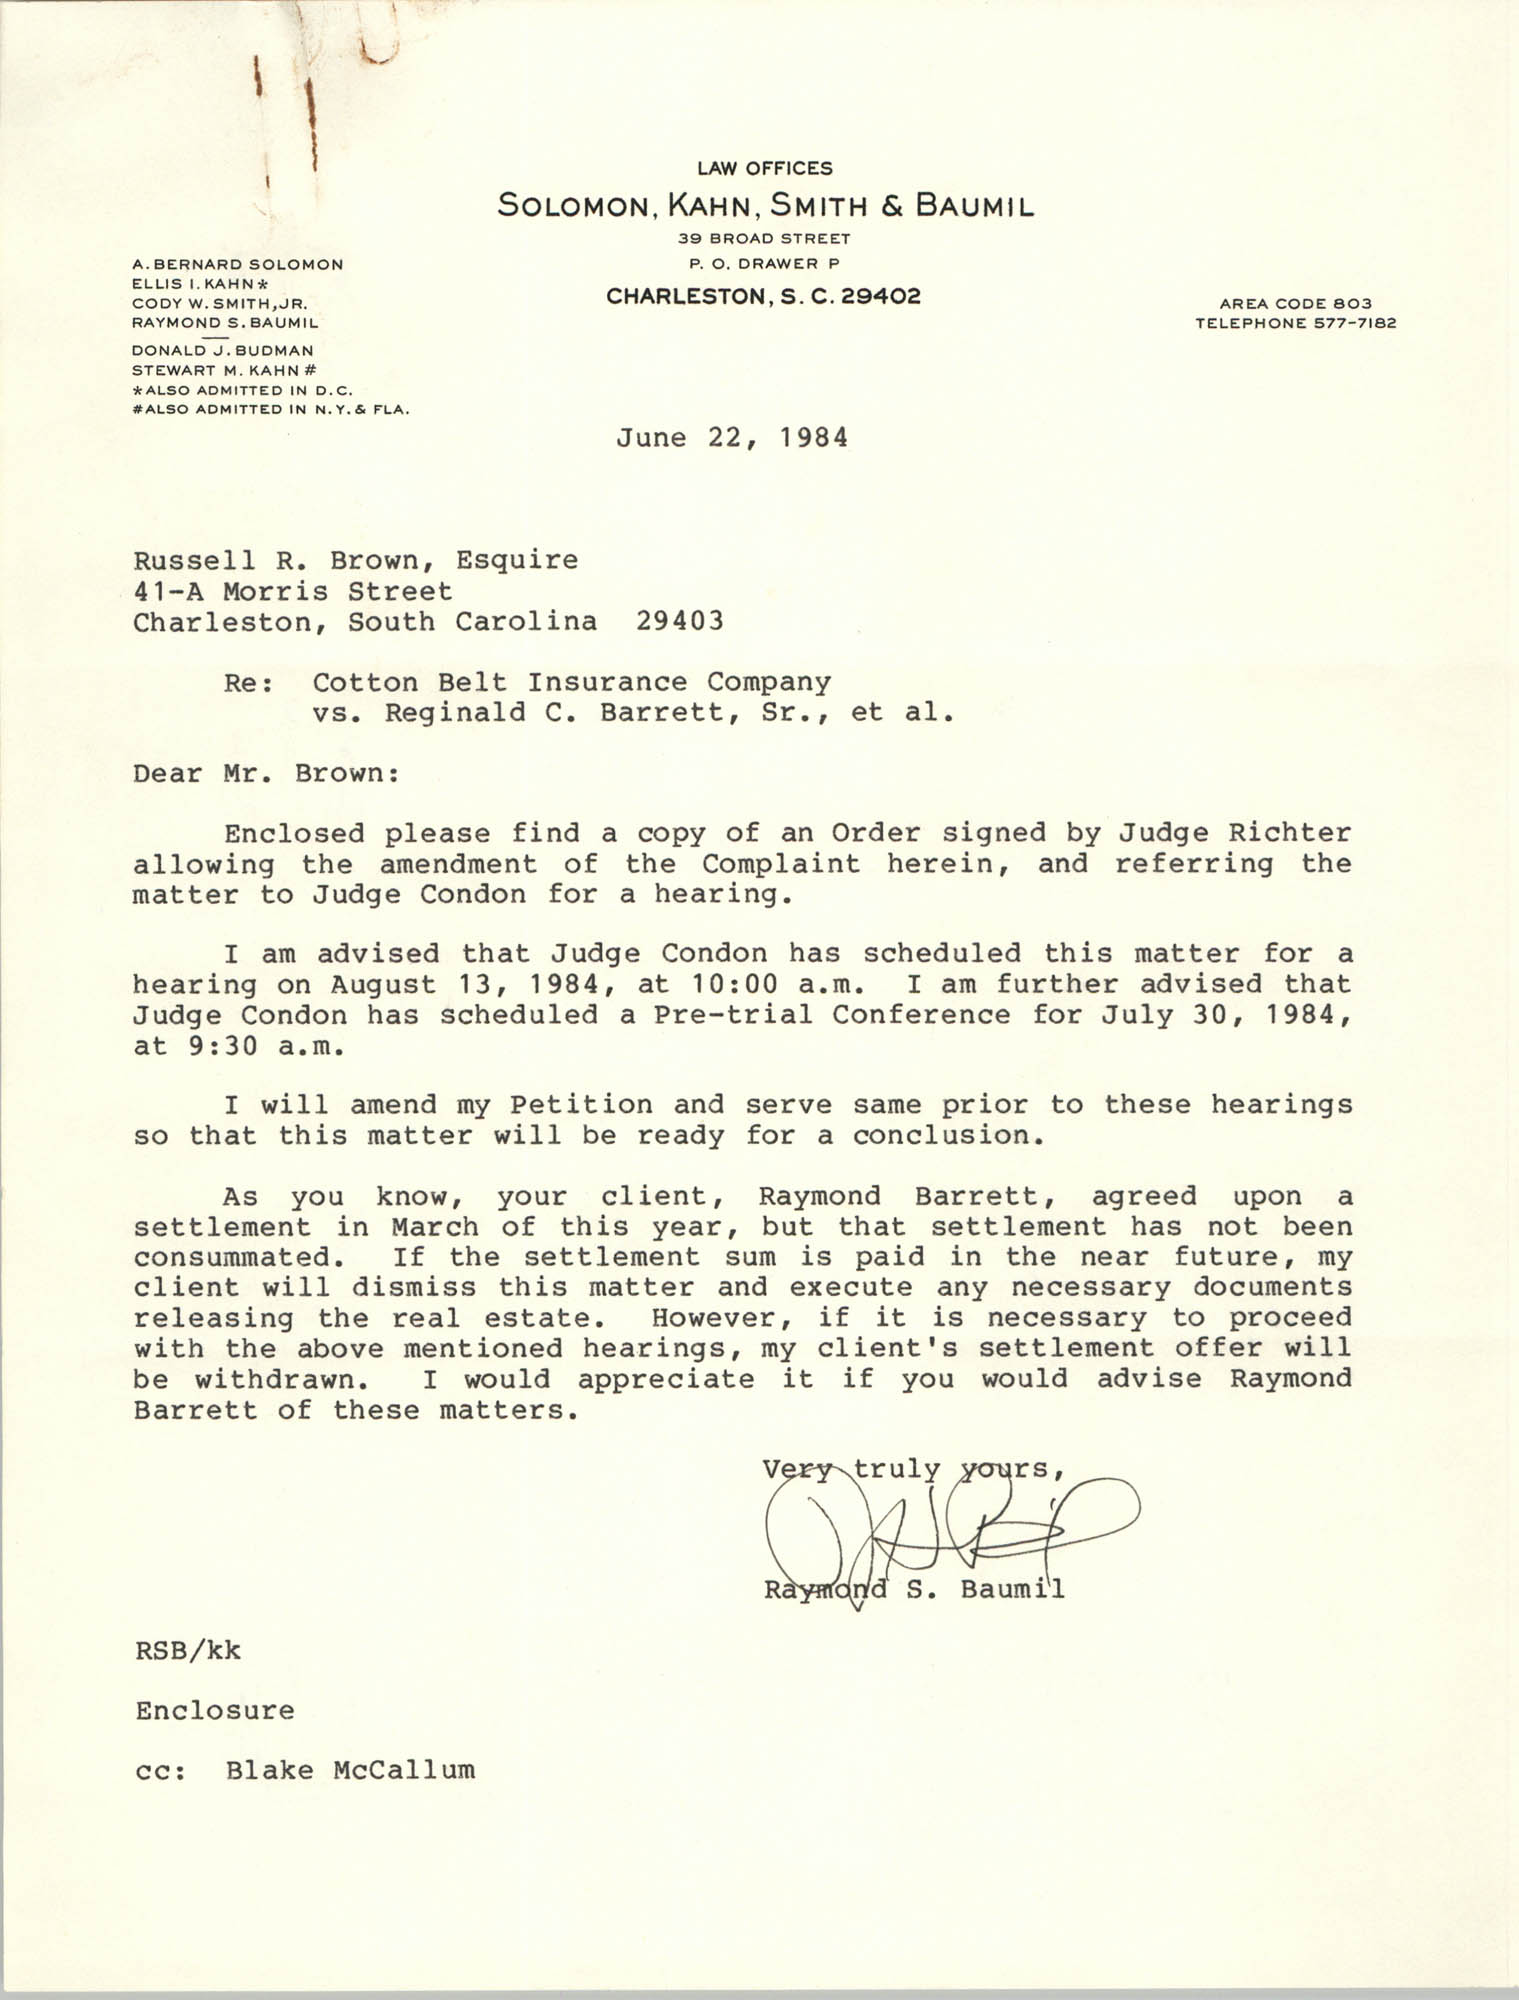 Letter from Raymond S. Baumil to Russell Brown, July 22, 1984